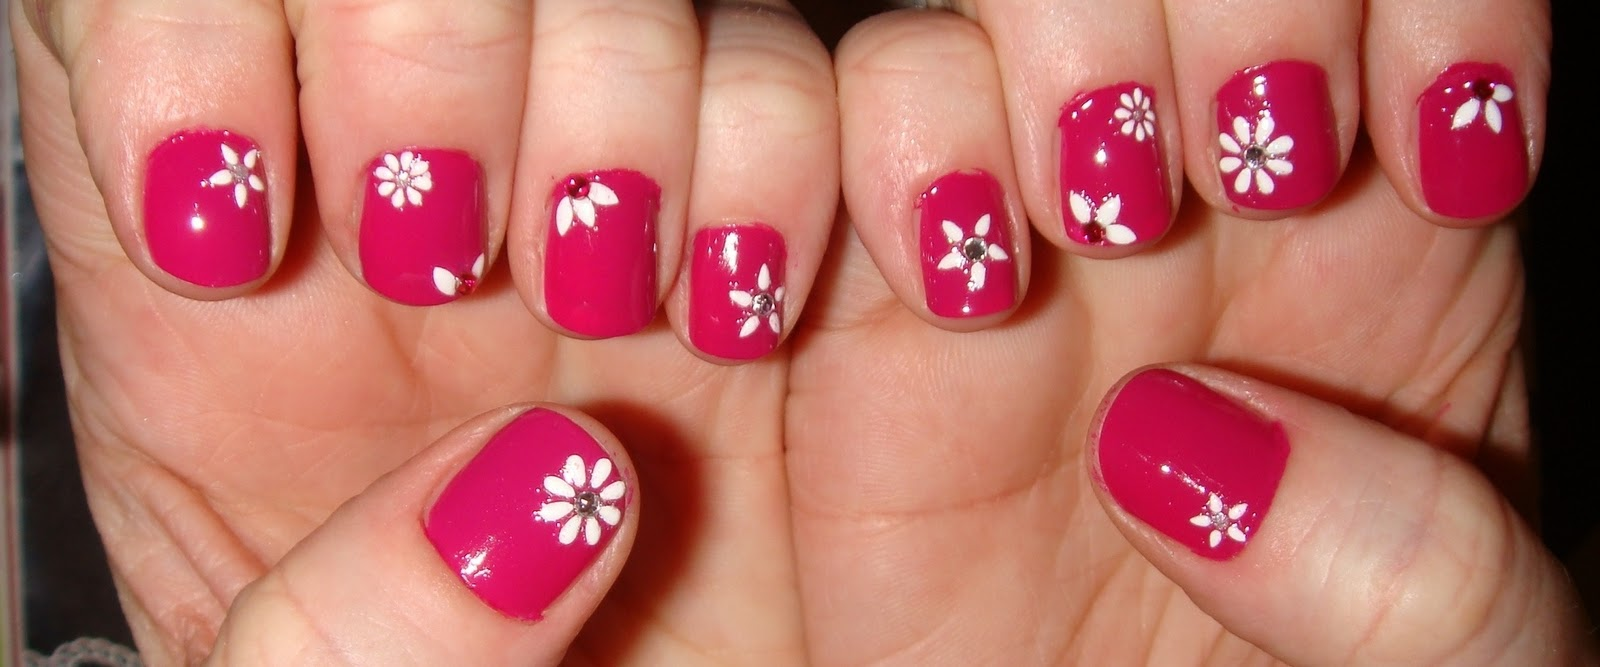 Nail Design Ideas Hot Pink Nail Ftempo